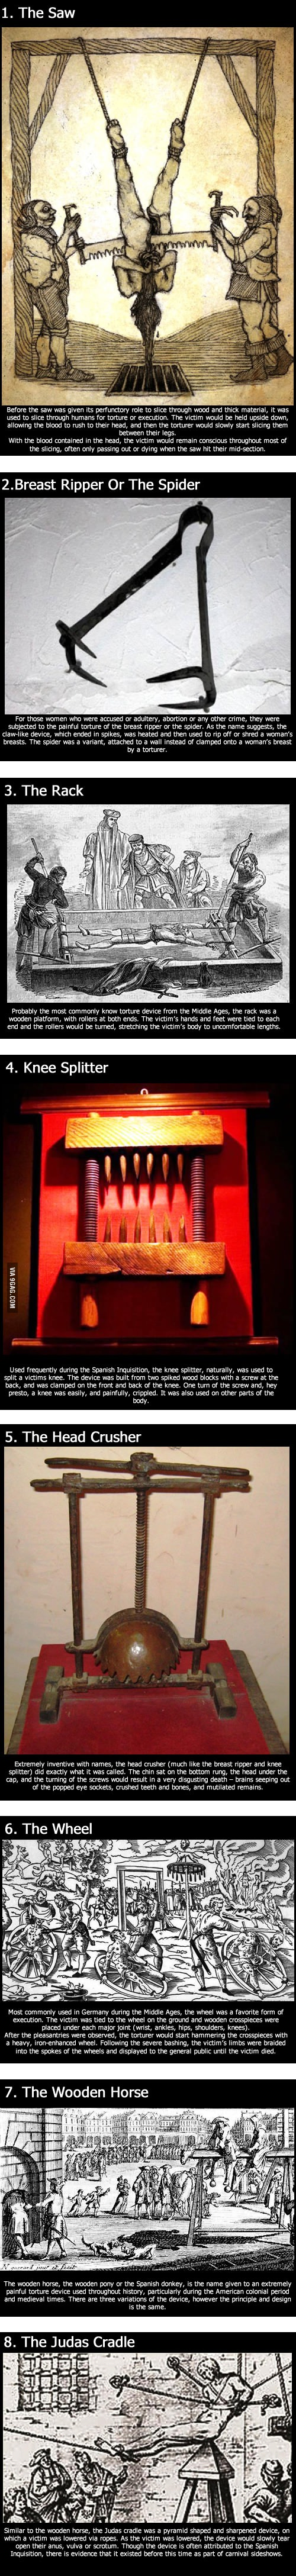 Enjoy The 8 Most Painful Torture Devices Of The Middle Ages....[WTF was wrong with Europe and medieval people??]